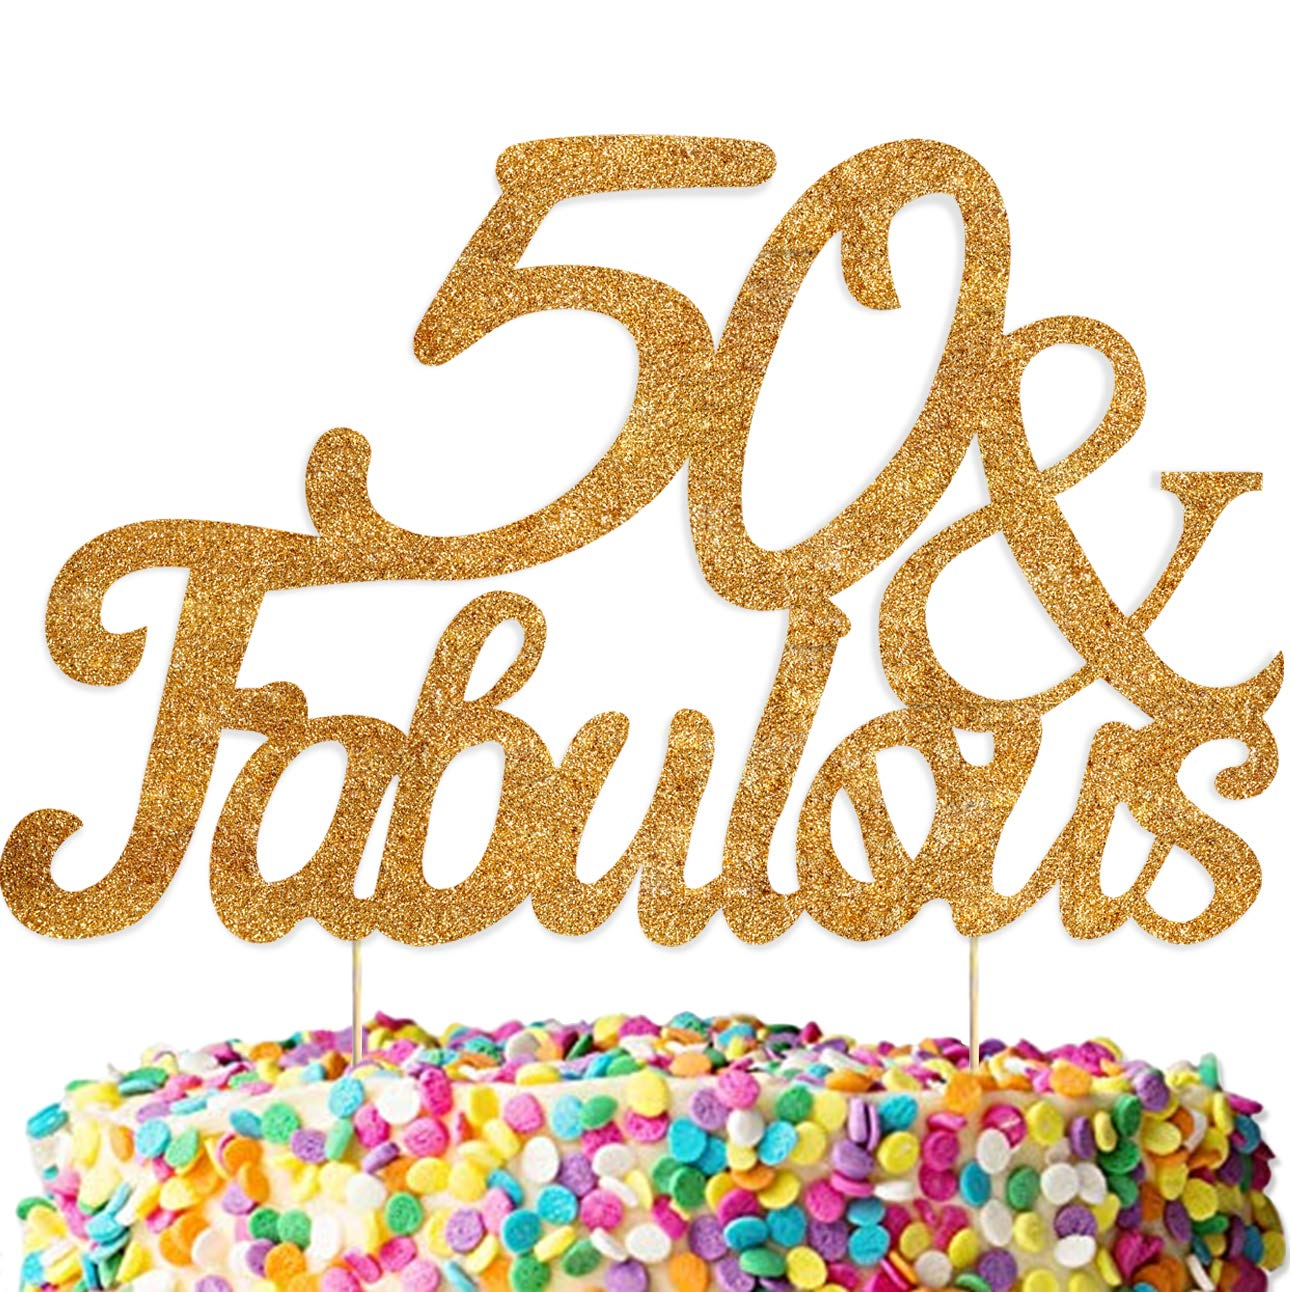 50 AND FABULOUS GOLD GLITTER STAND-UP CAKE TOPPER